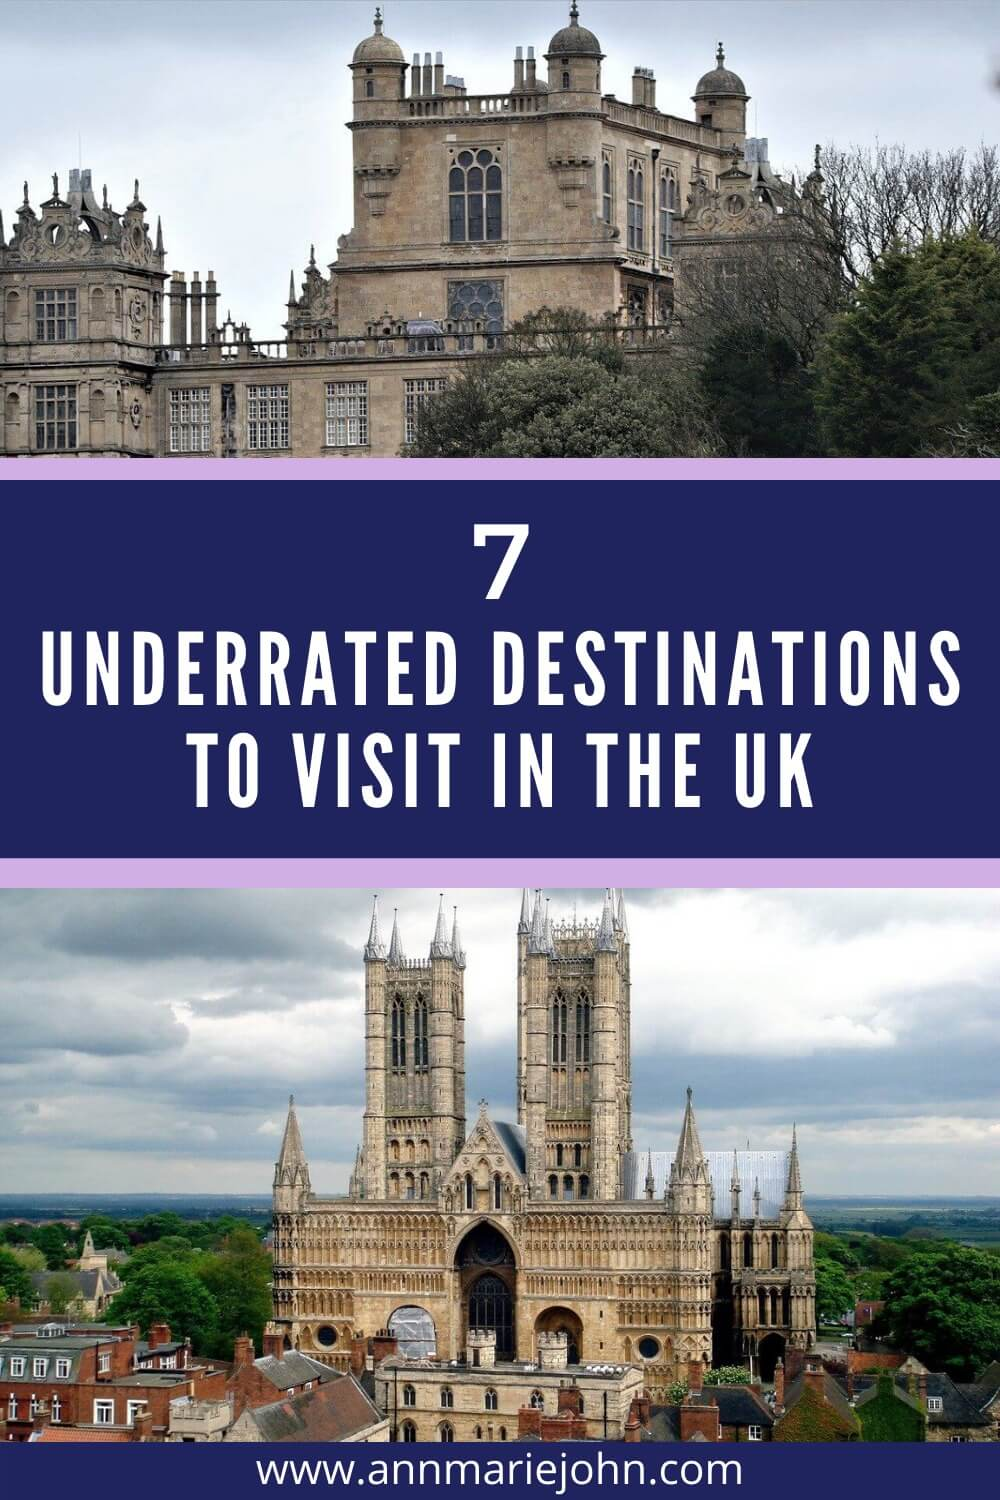 7 underrated destinations to visit in the UK